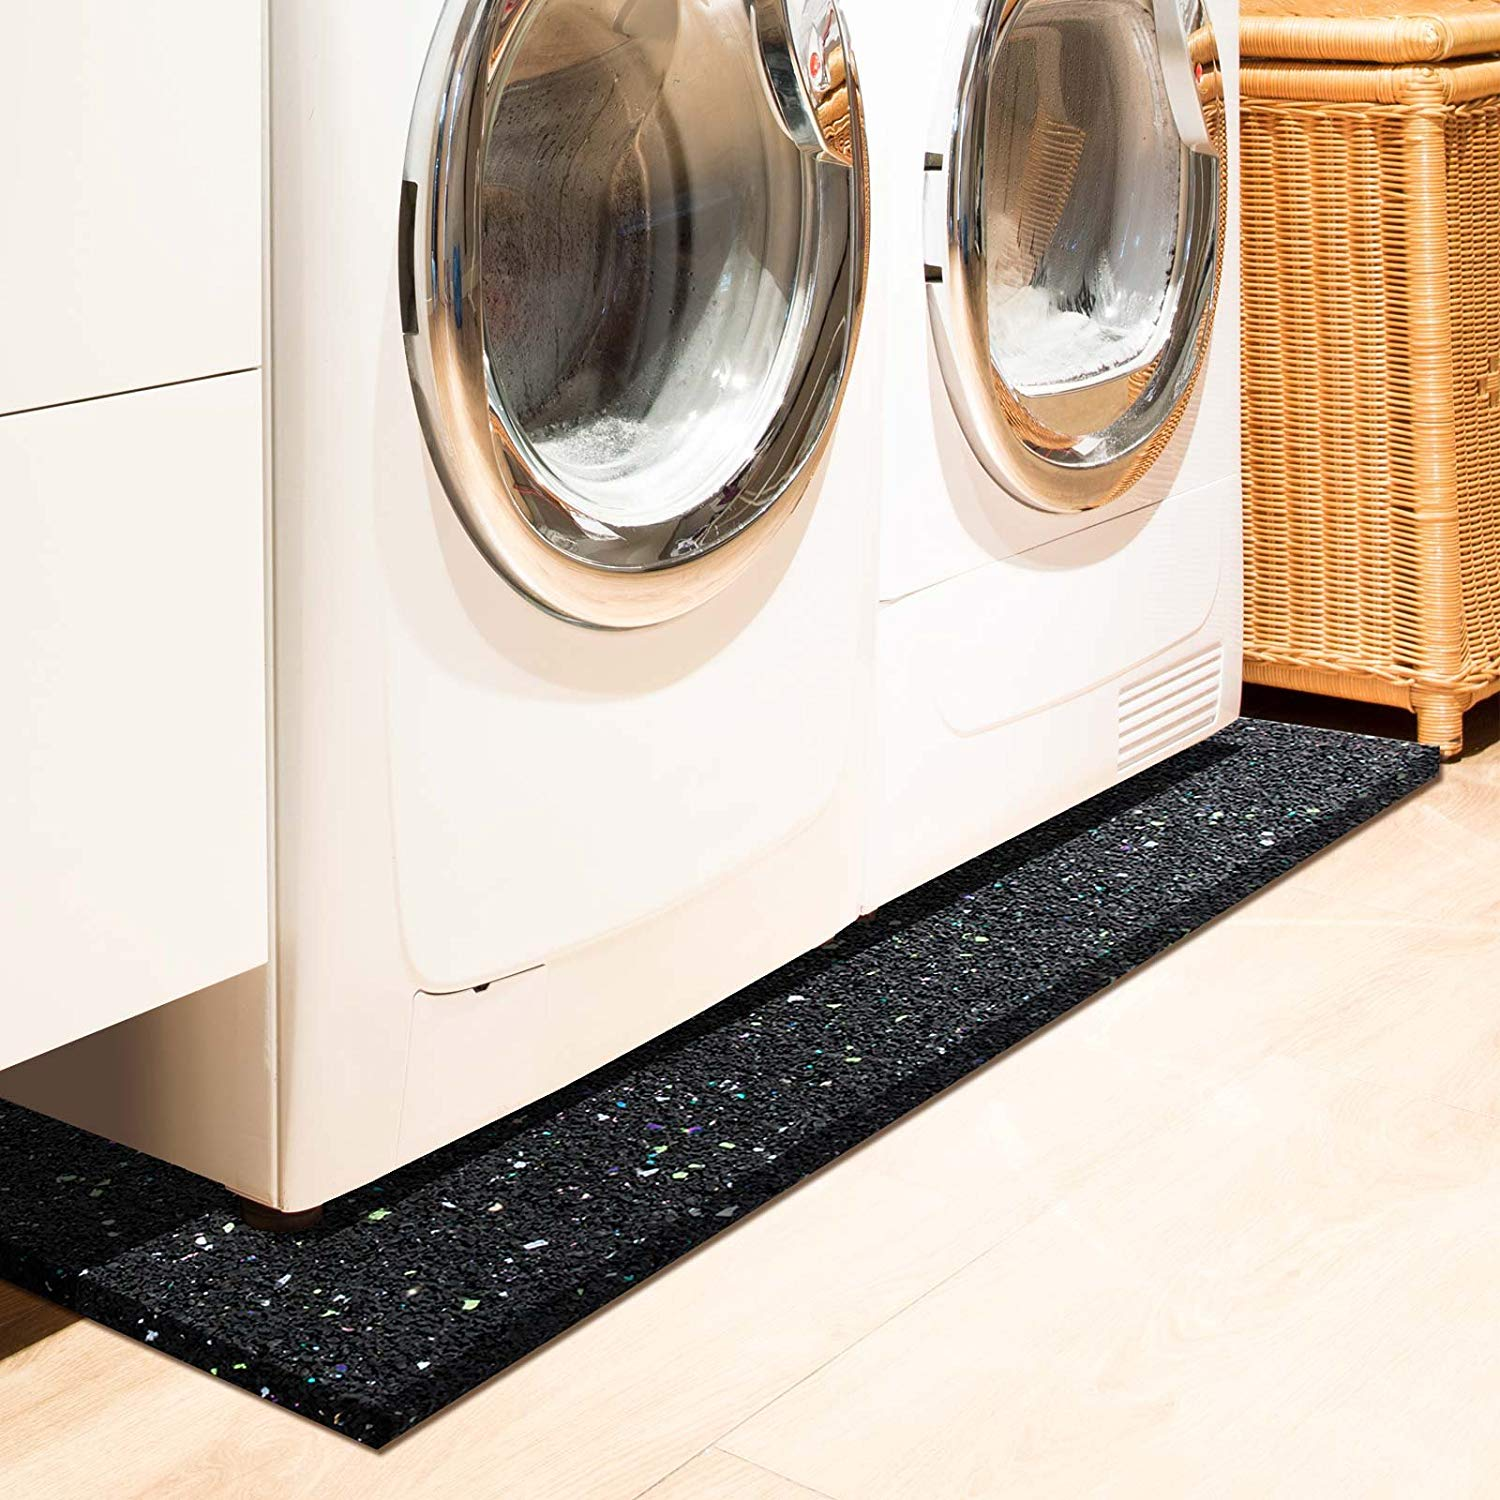 Meuble Machine A Laver Seche Linge indispensable, le tapis anti vibration - zone led